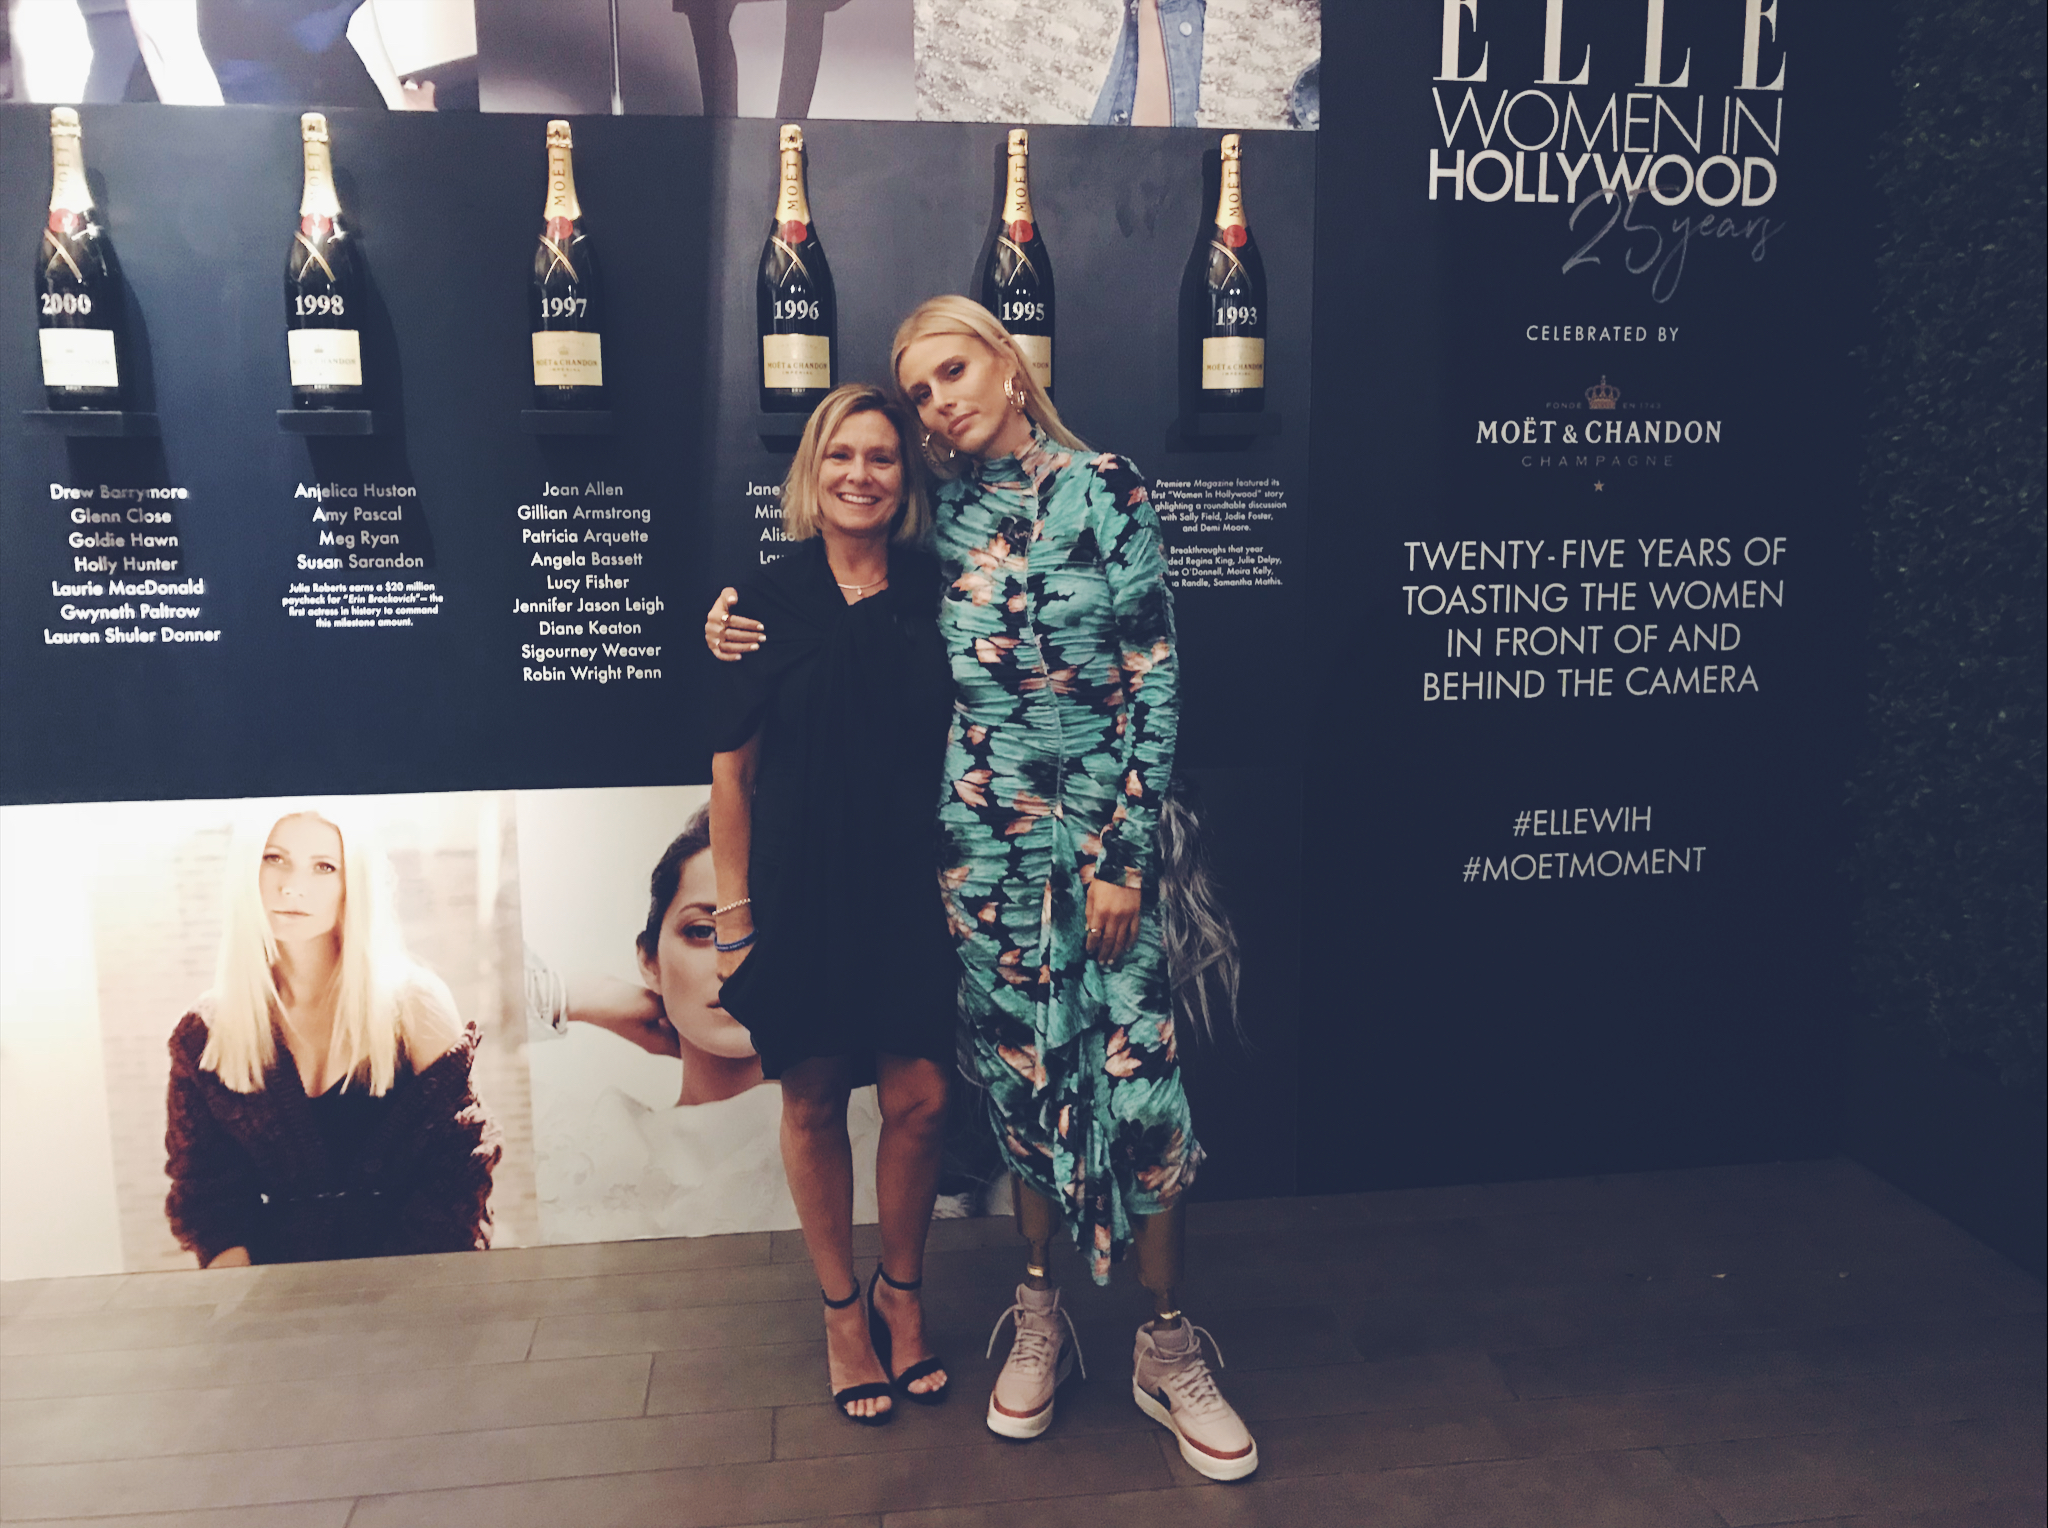 Dawn and Lauren Wasser network at Elle r